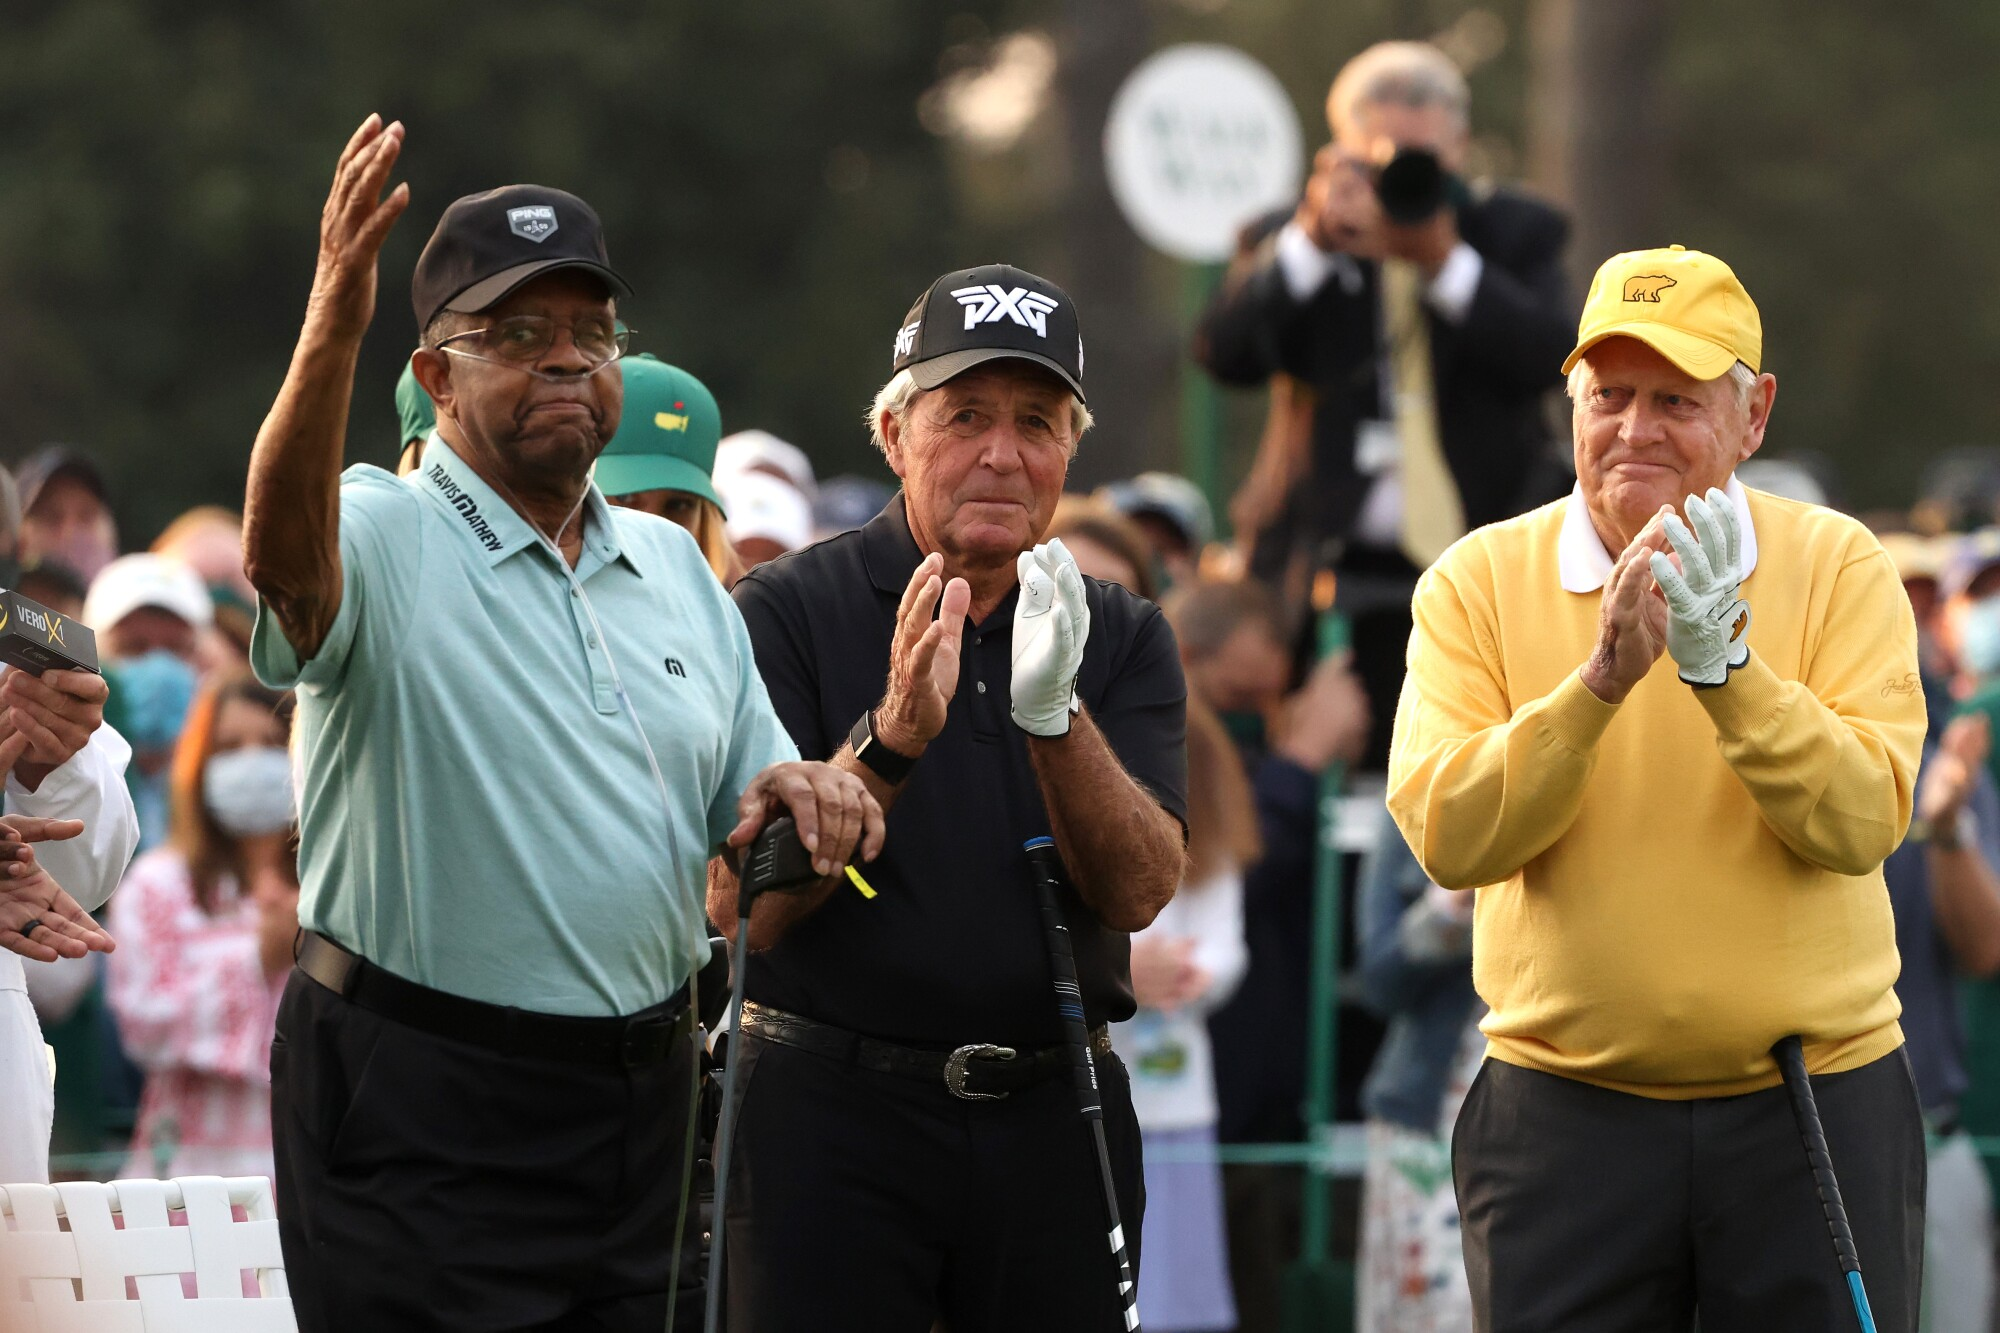 Honorary starter Lee Elder waves to the patrons alongside Gary Player and Jack Nicklaus.